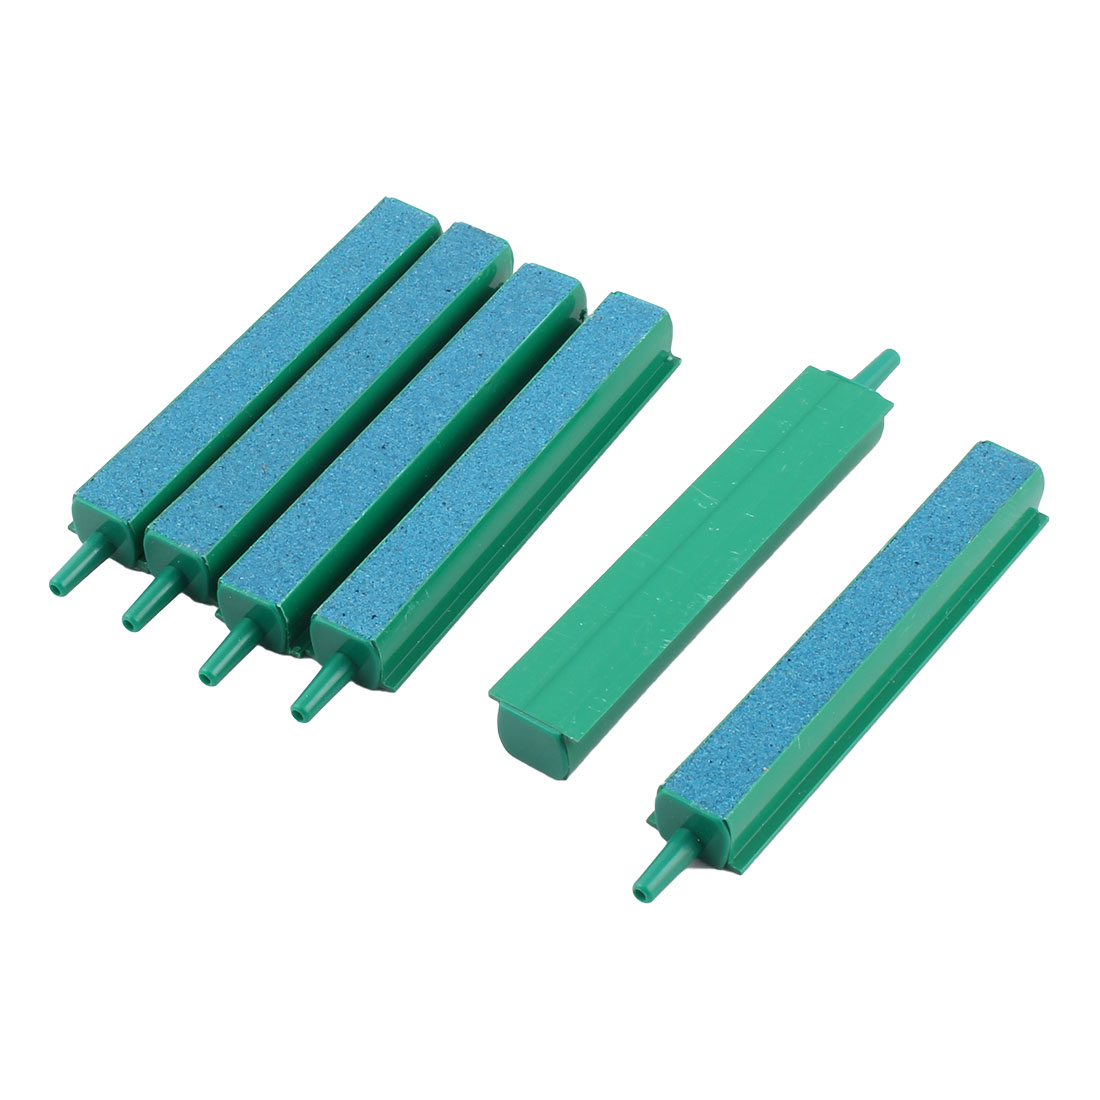 Unique BargainsAquarium Plastic Connector Air Bubble Stone Bar Strip Green 10cm Length 6 PCS